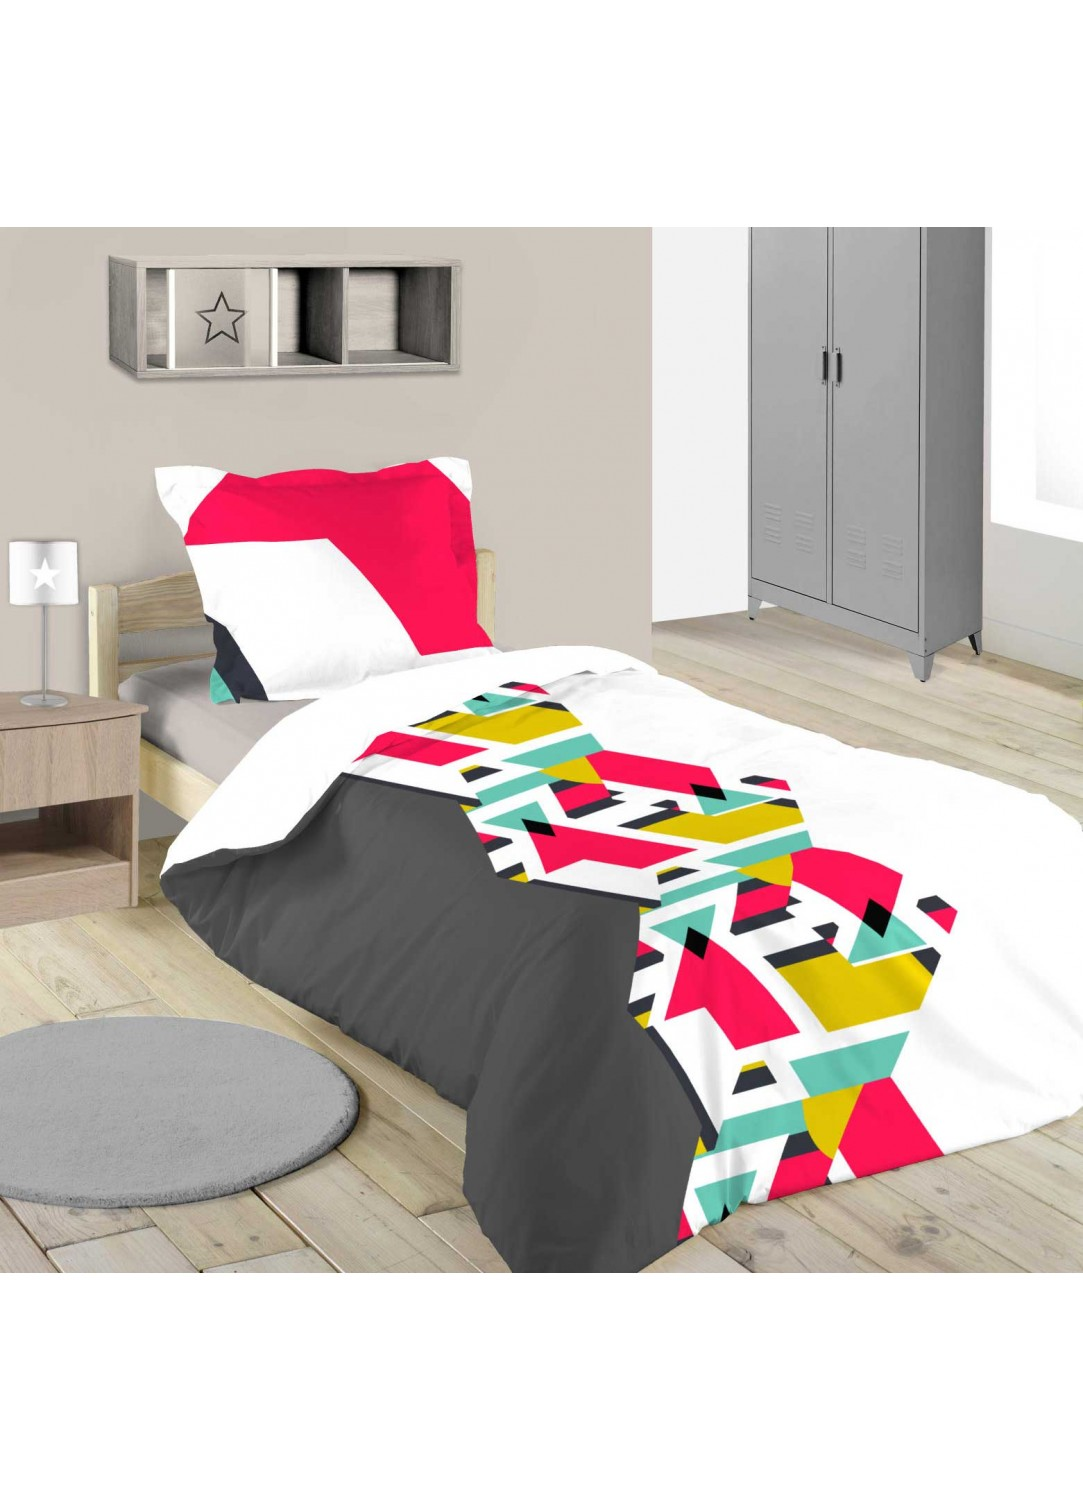 parure de lit graphique et color e multicolore homemaison vente en ligne parures de lit. Black Bedroom Furniture Sets. Home Design Ideas